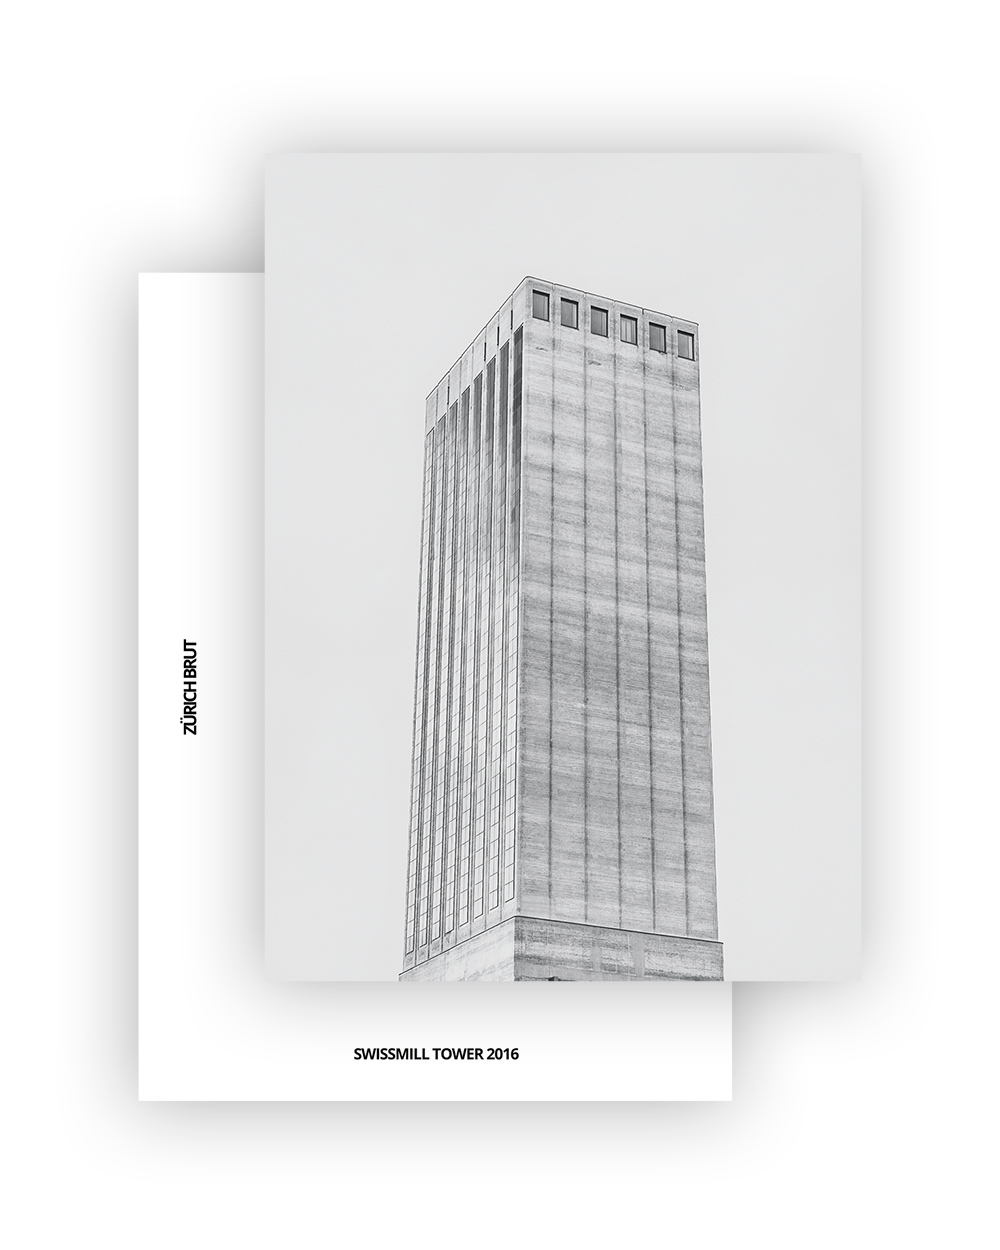 SWISSMILL TOWER I HARDER HAAS PARTNER AG I ZÜRICH BRUT POSTCARD A6 I ©HEARTBRUT/KARIN HUNTER BÜRKI